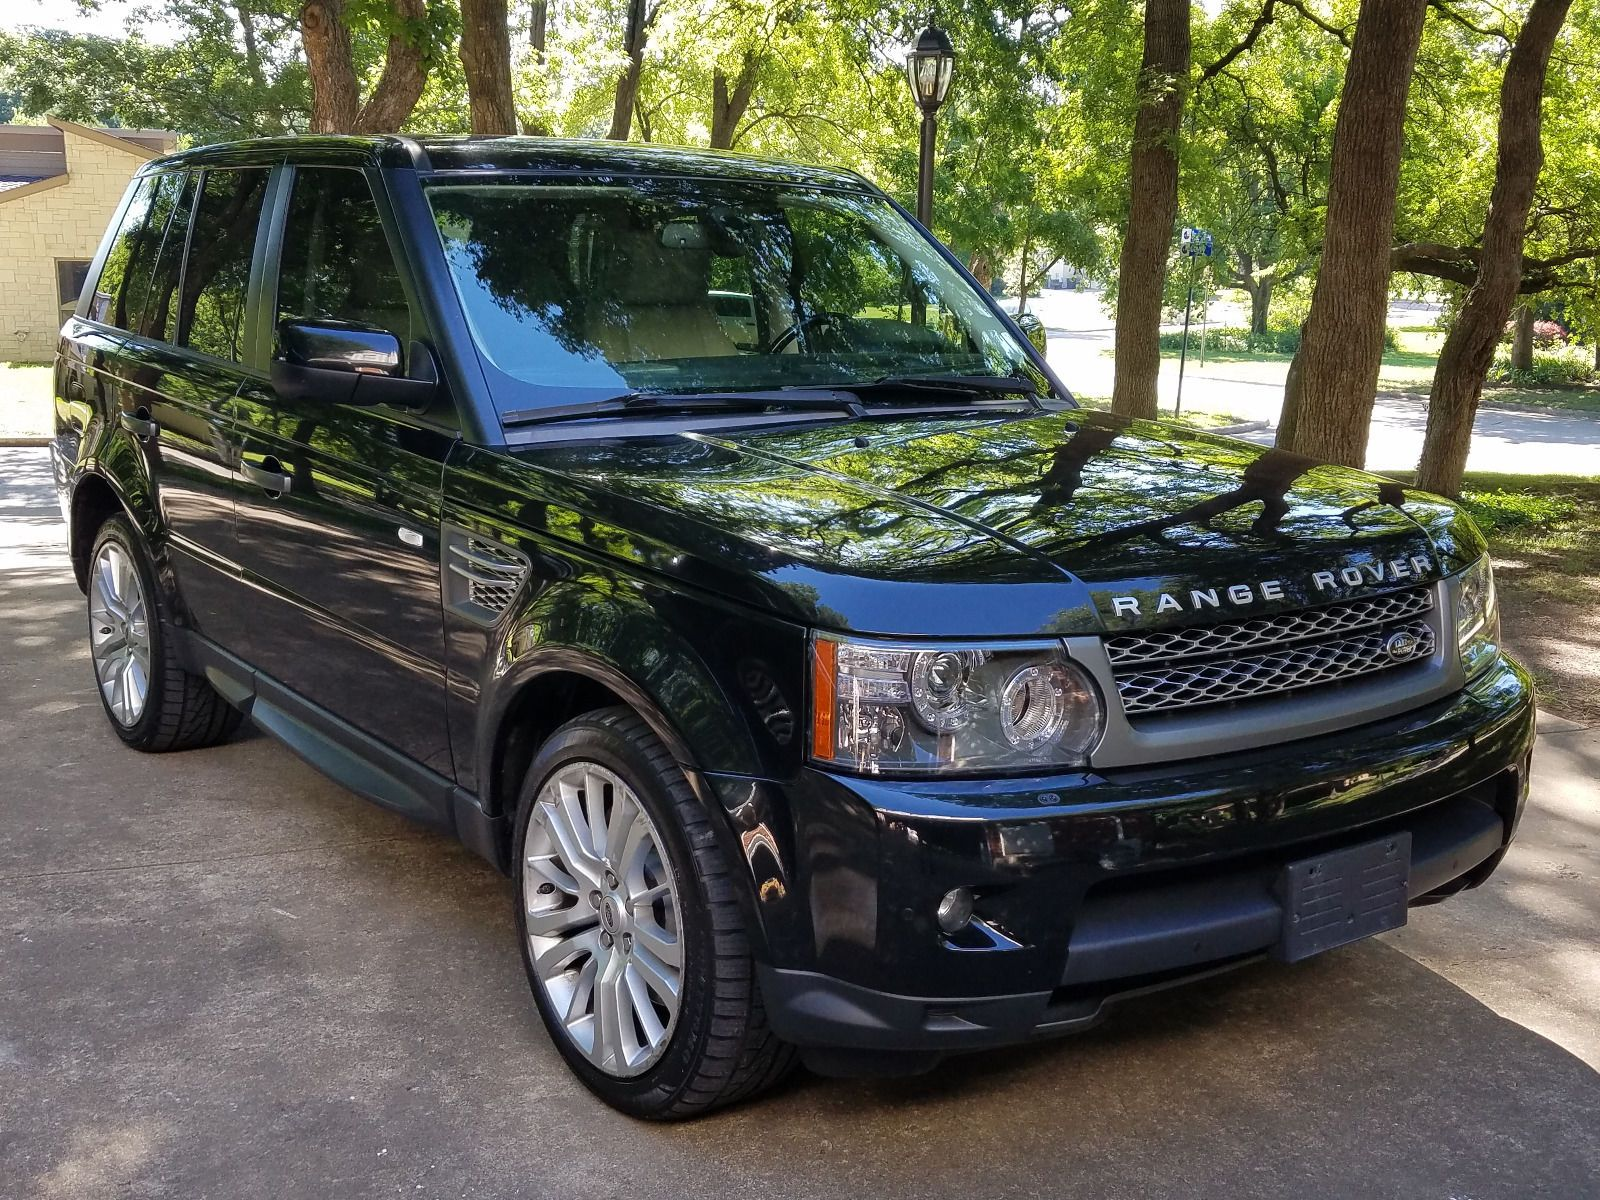 Absolutely Stunning 2010 Land Rover Range Rover Sport Hse Lux Offroad Range Rover Sport Land Rover Range Rover